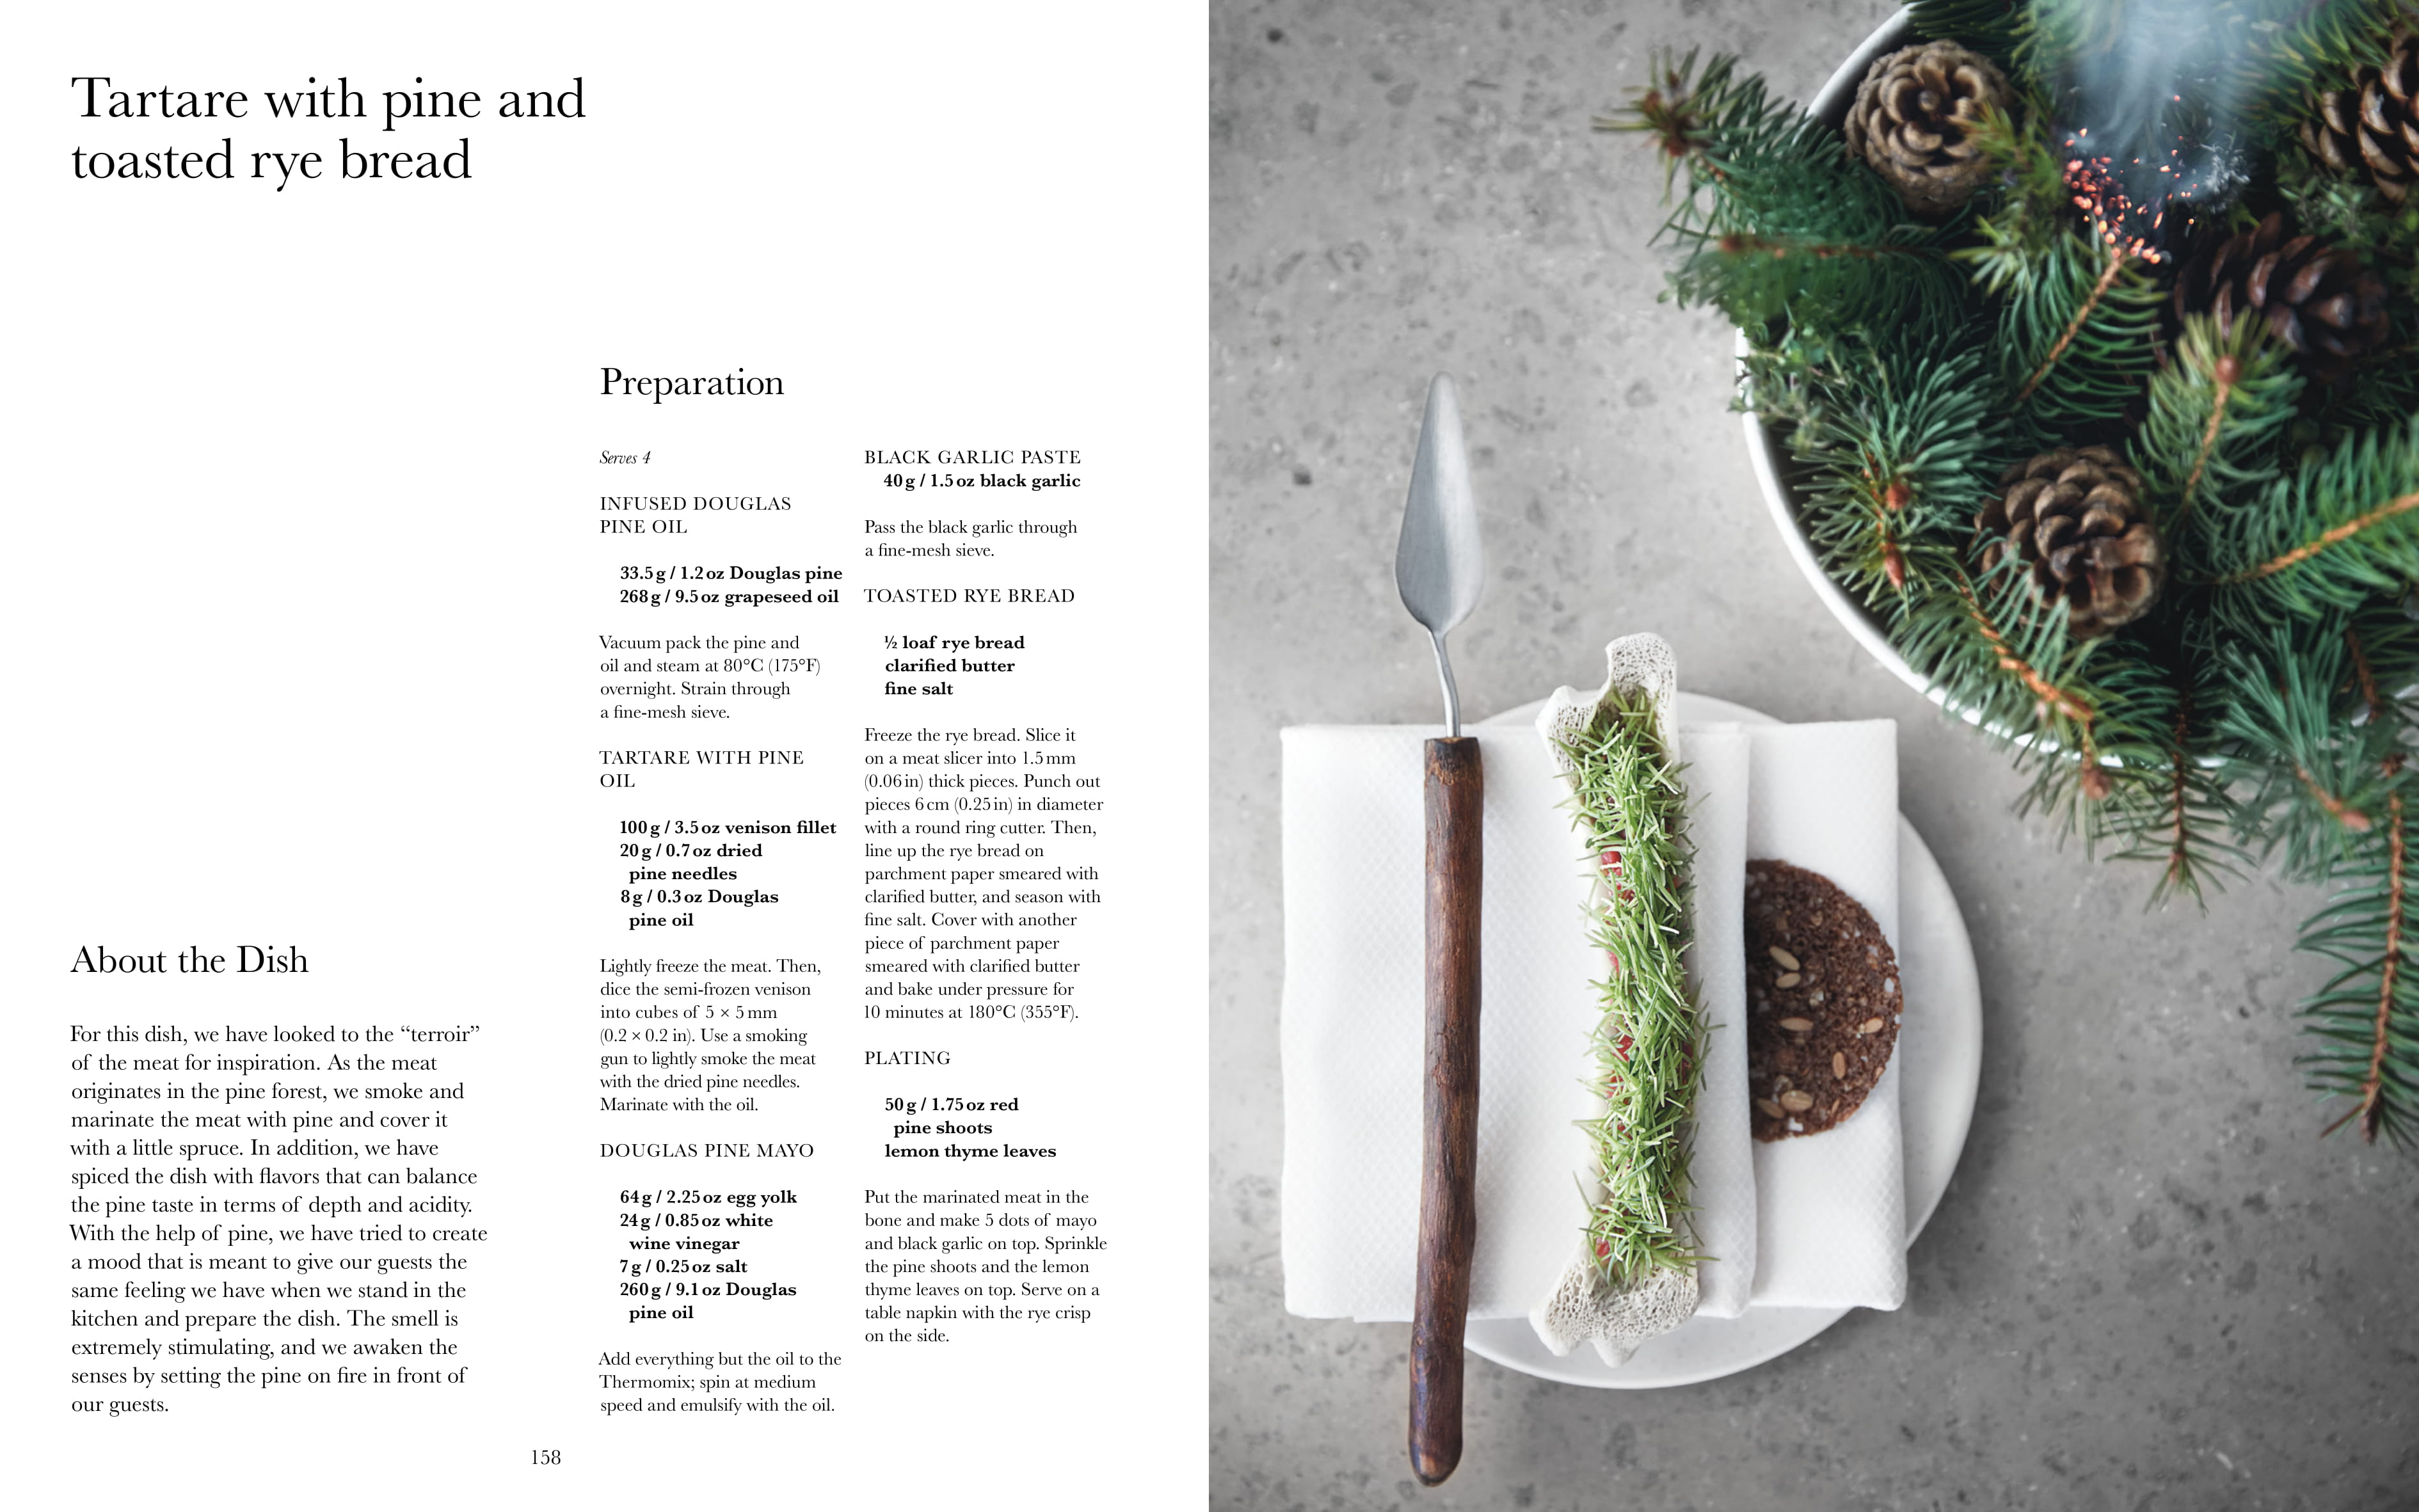 By Borderless Co. from Nordic by Nature. Nordic Cuisine and Culinary Excursions copyright Gestalten 2018